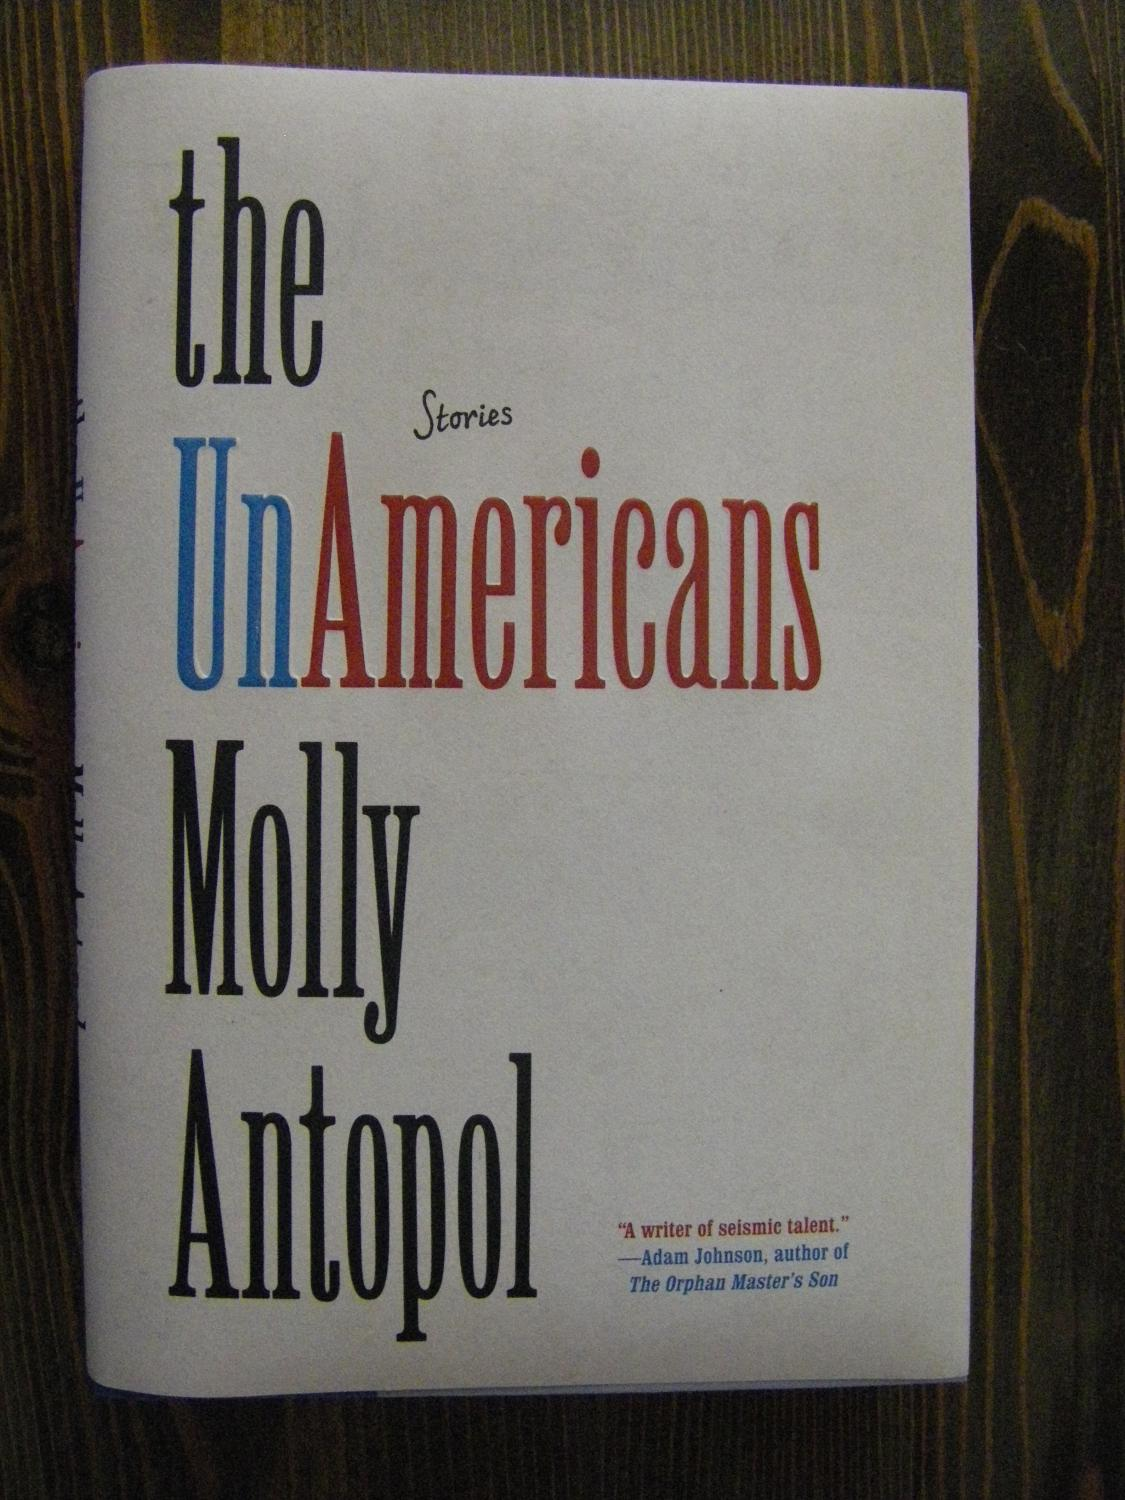 The_UnAmericans_Molly_Antopol_Très_bon_Couverture_rigide